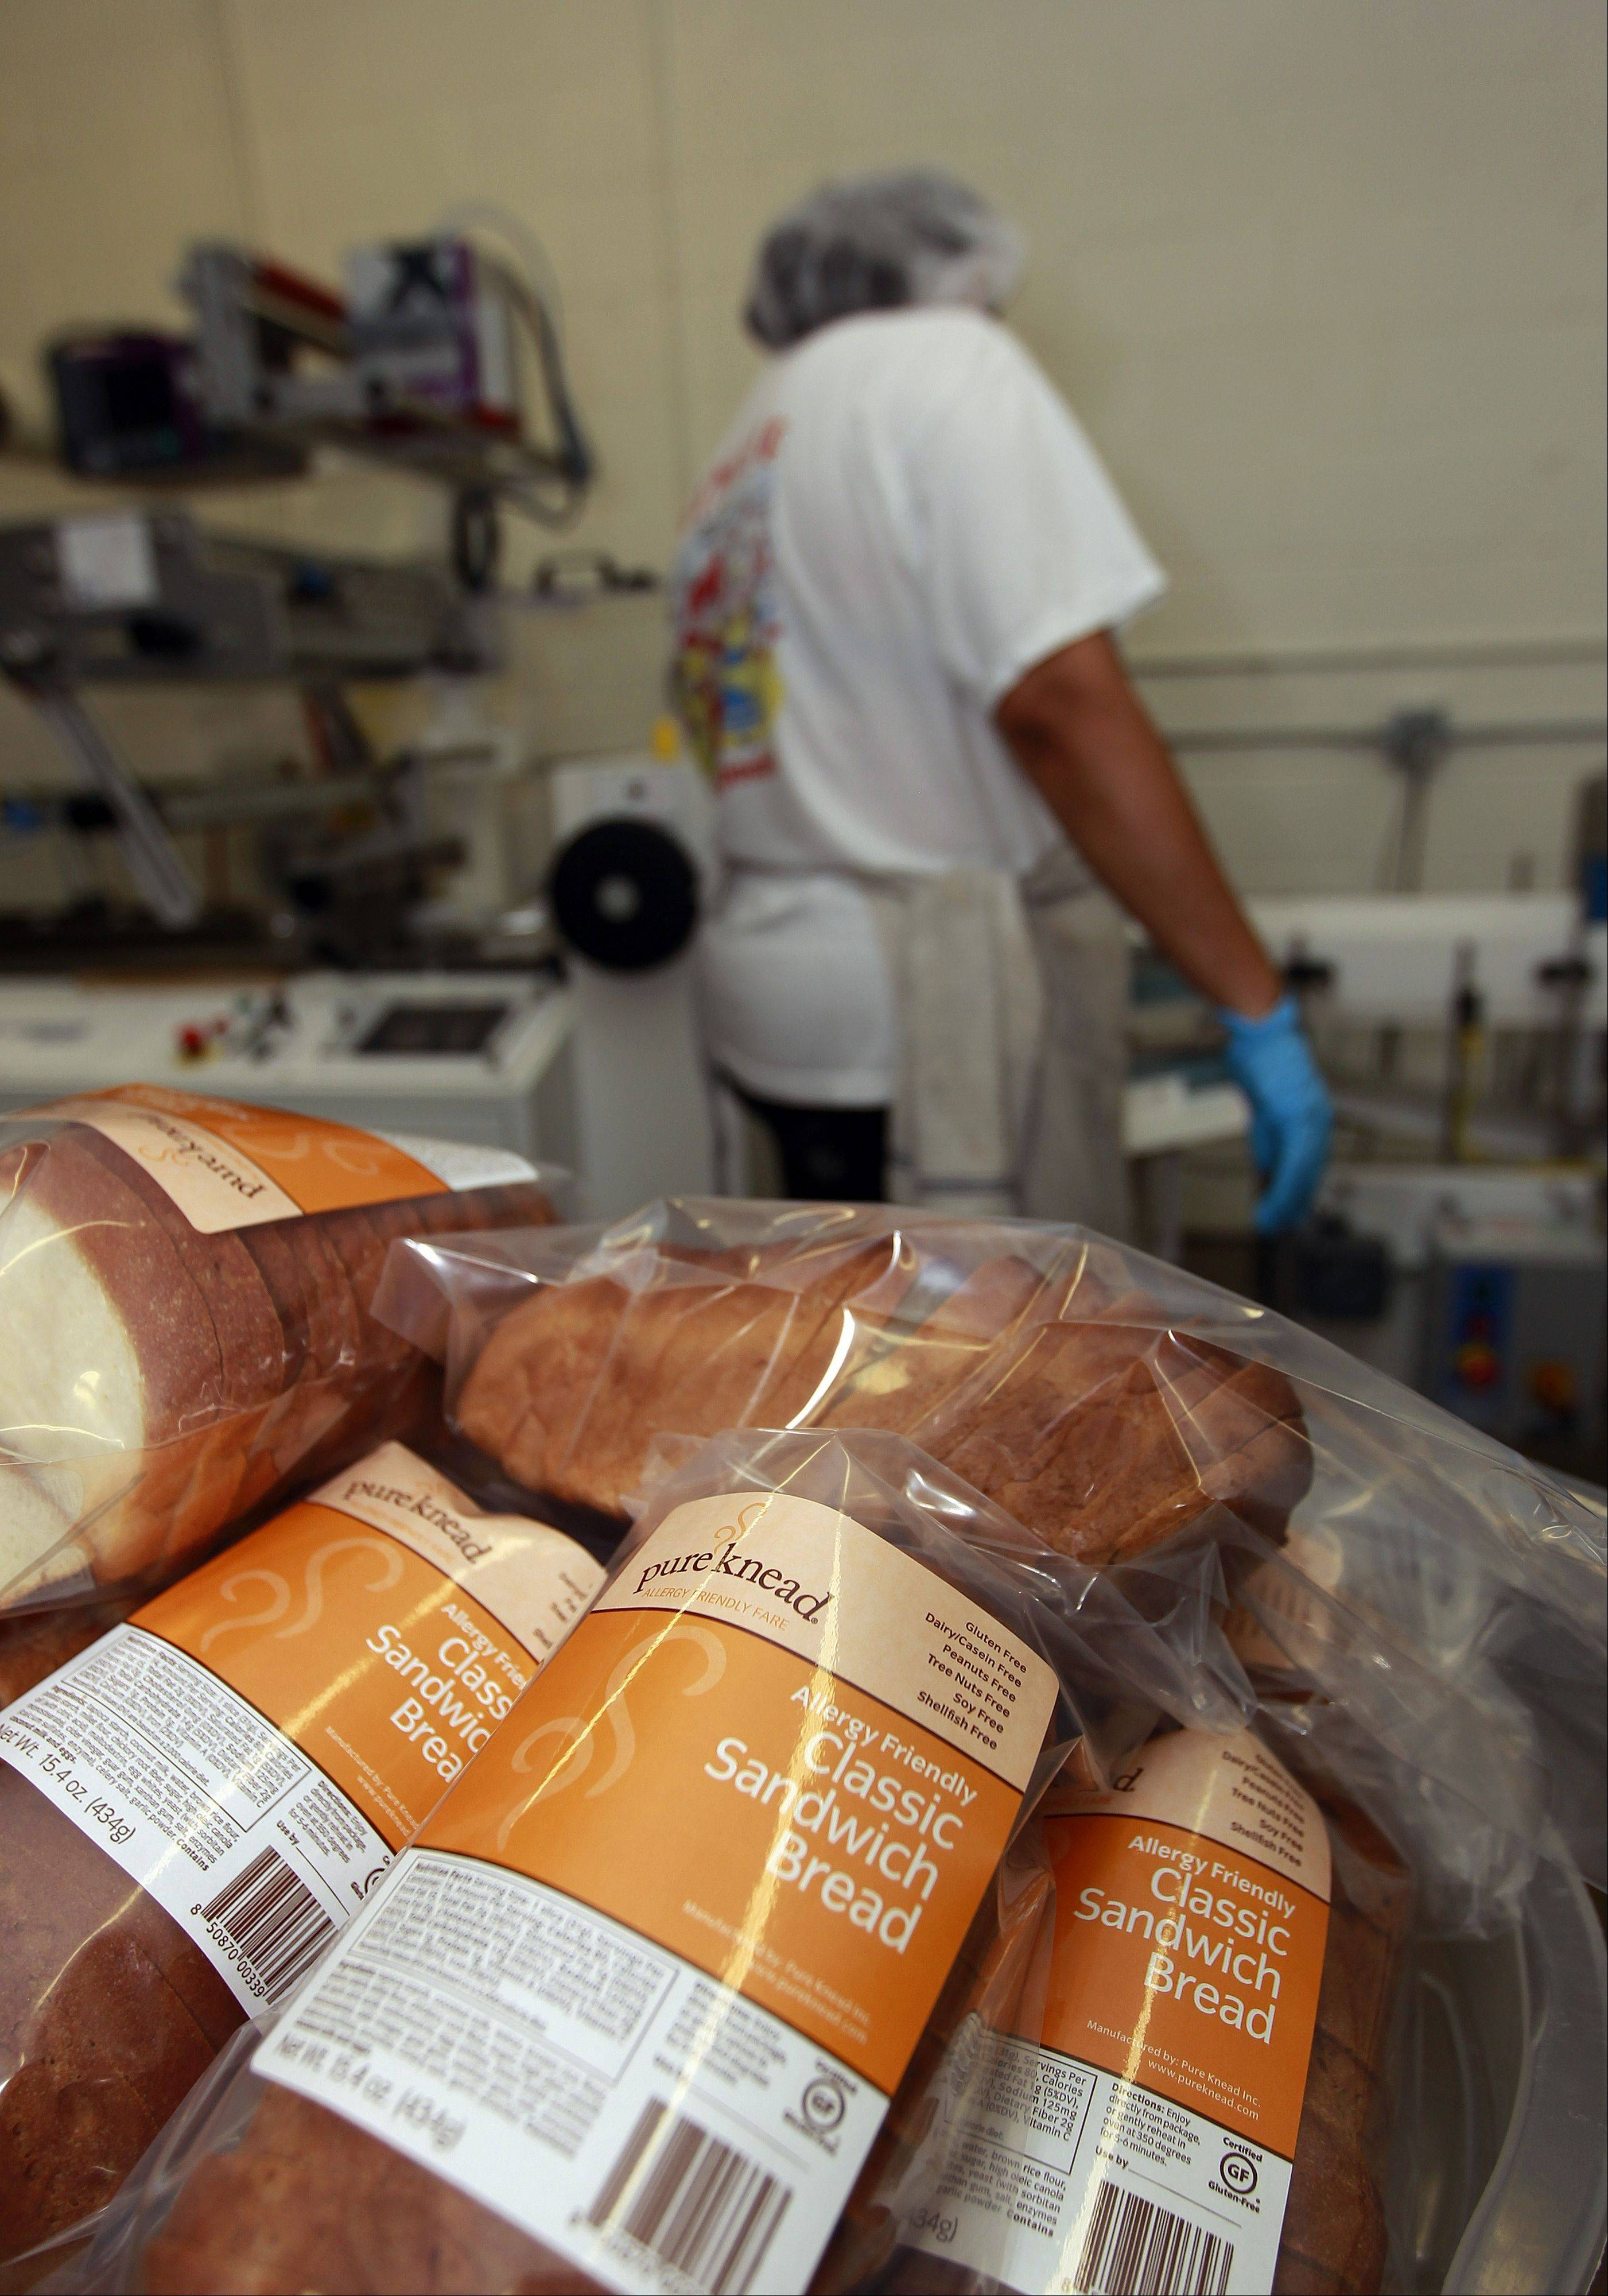 Gluten-free bread is packaged at the Pure Knead bakery in Decatur, Ga. A decade ago, virtually no one in the United States seemed to have a problem eating gluten in bread and other foods. Now, millions do.